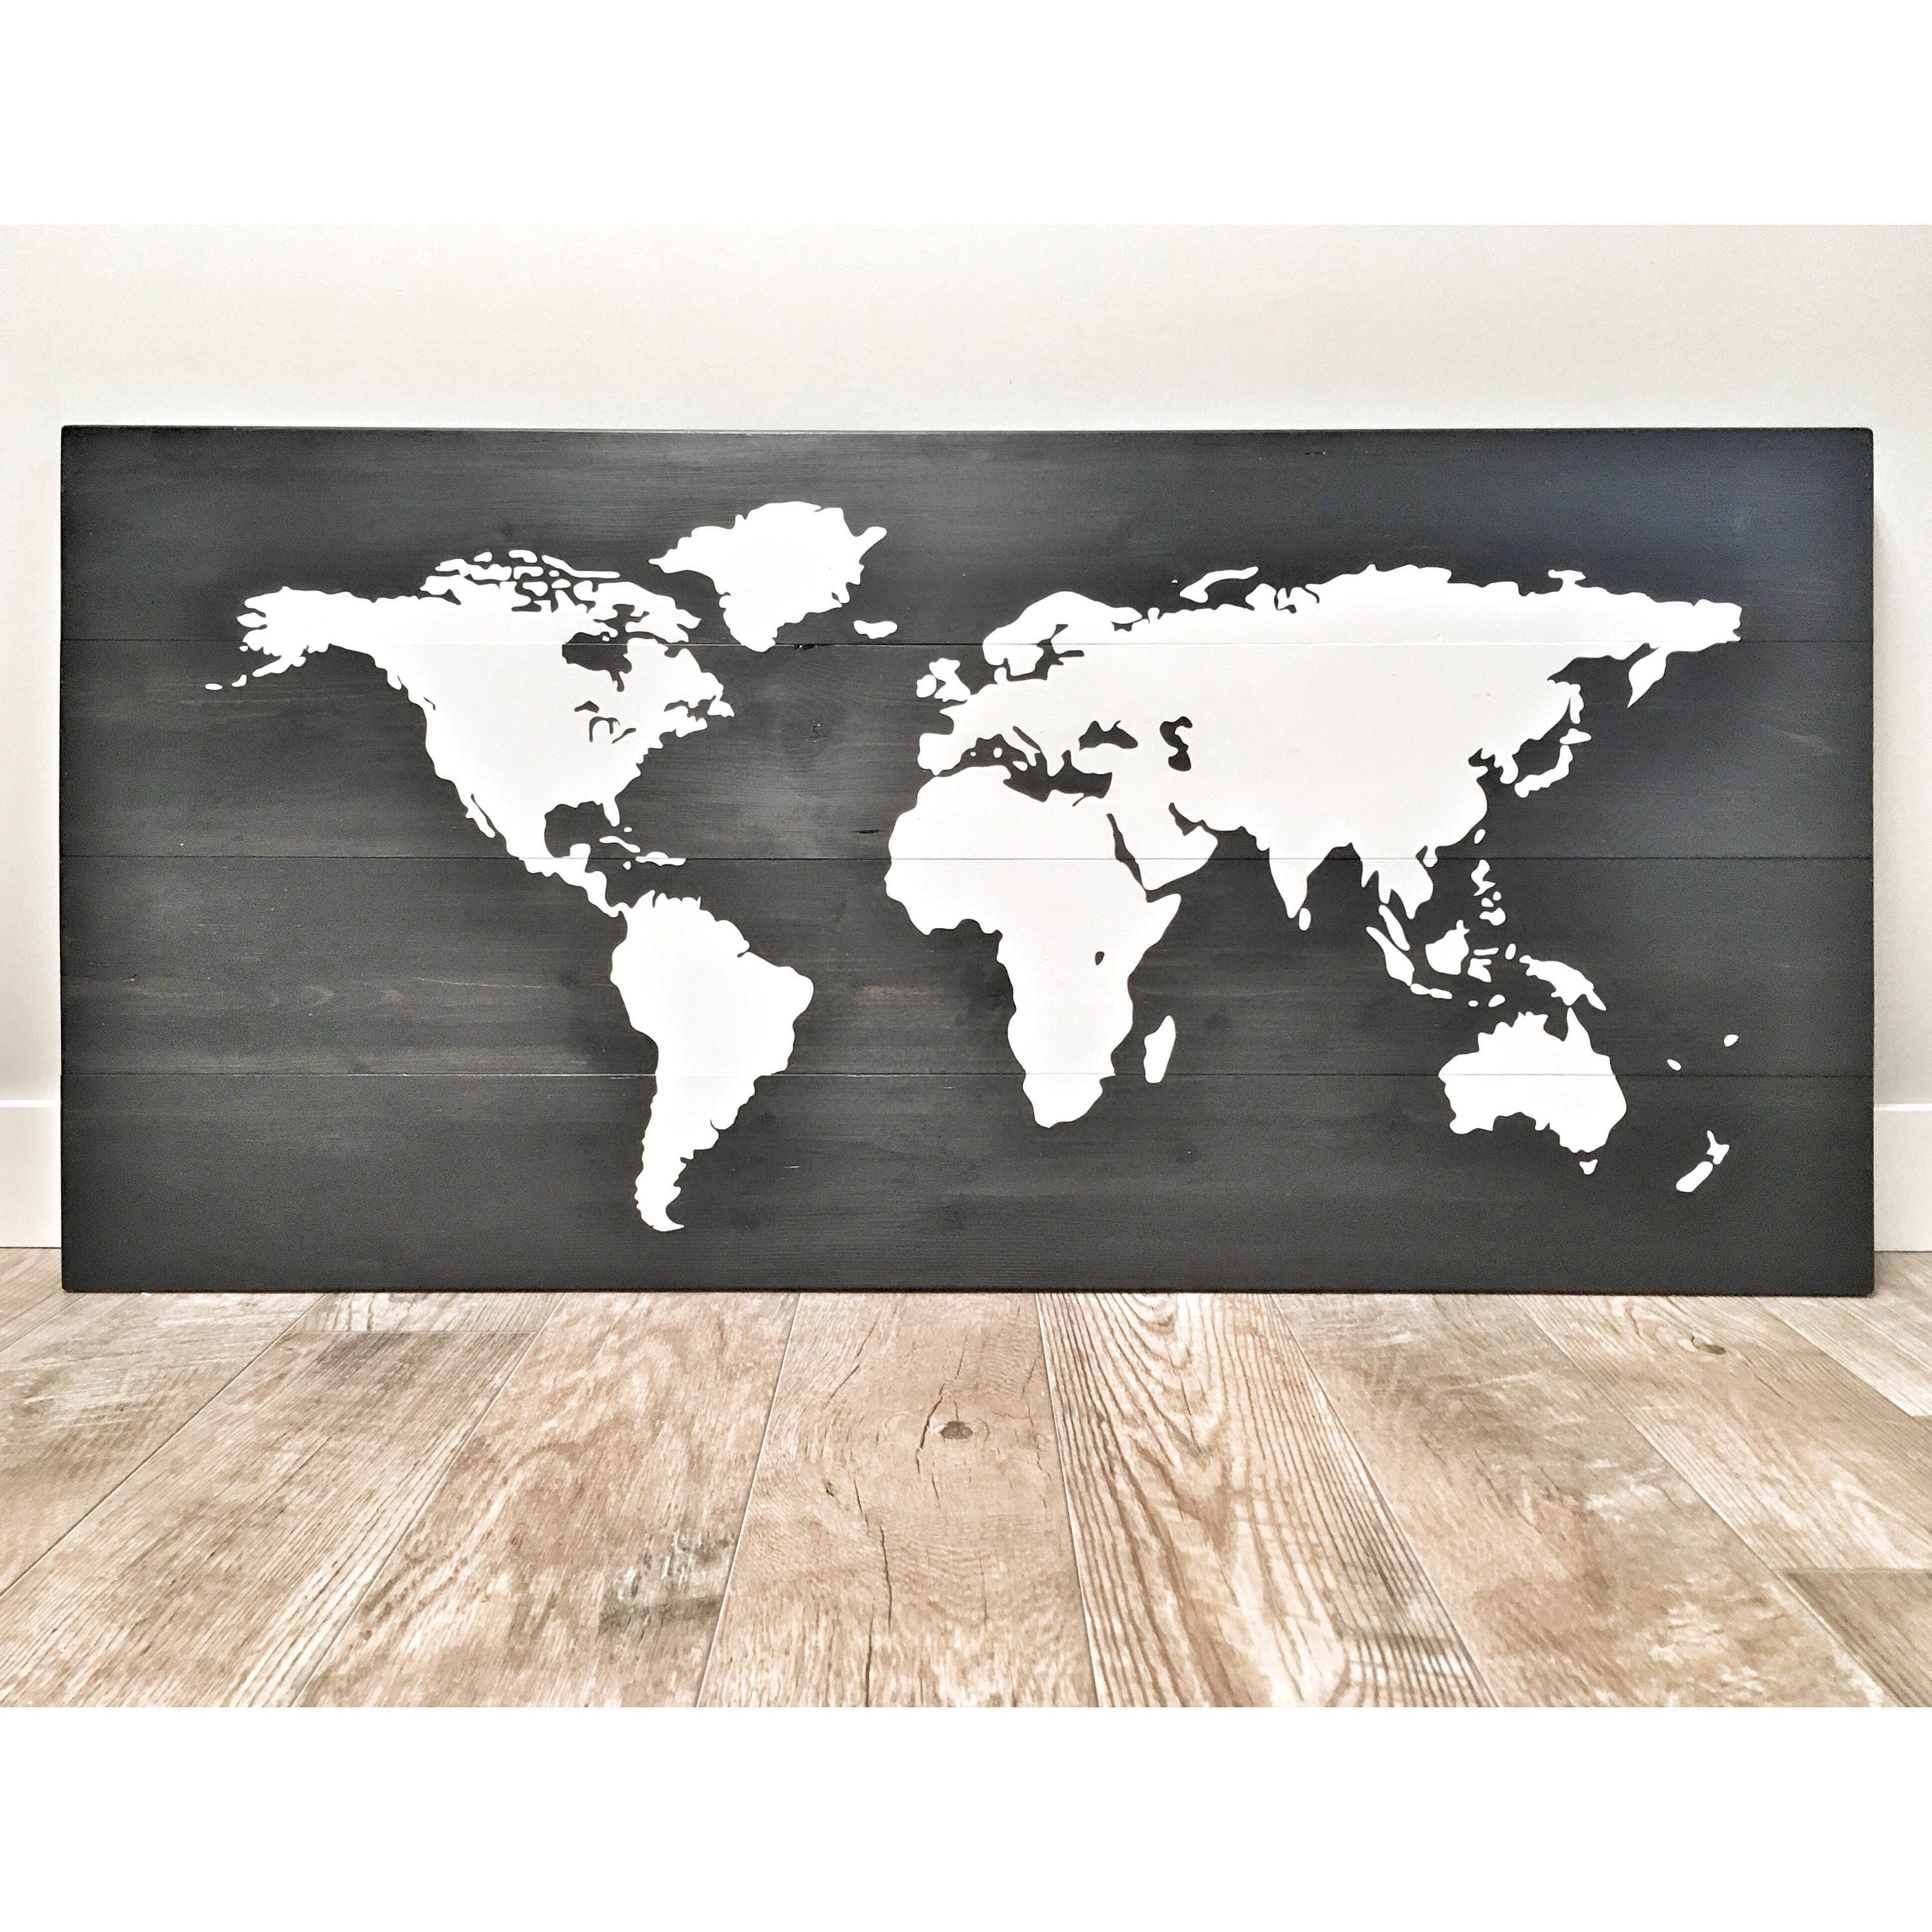 Huge large rustic wood world map rustic decor farmhouse description this rustic wooden world map gumiabroncs Choice Image